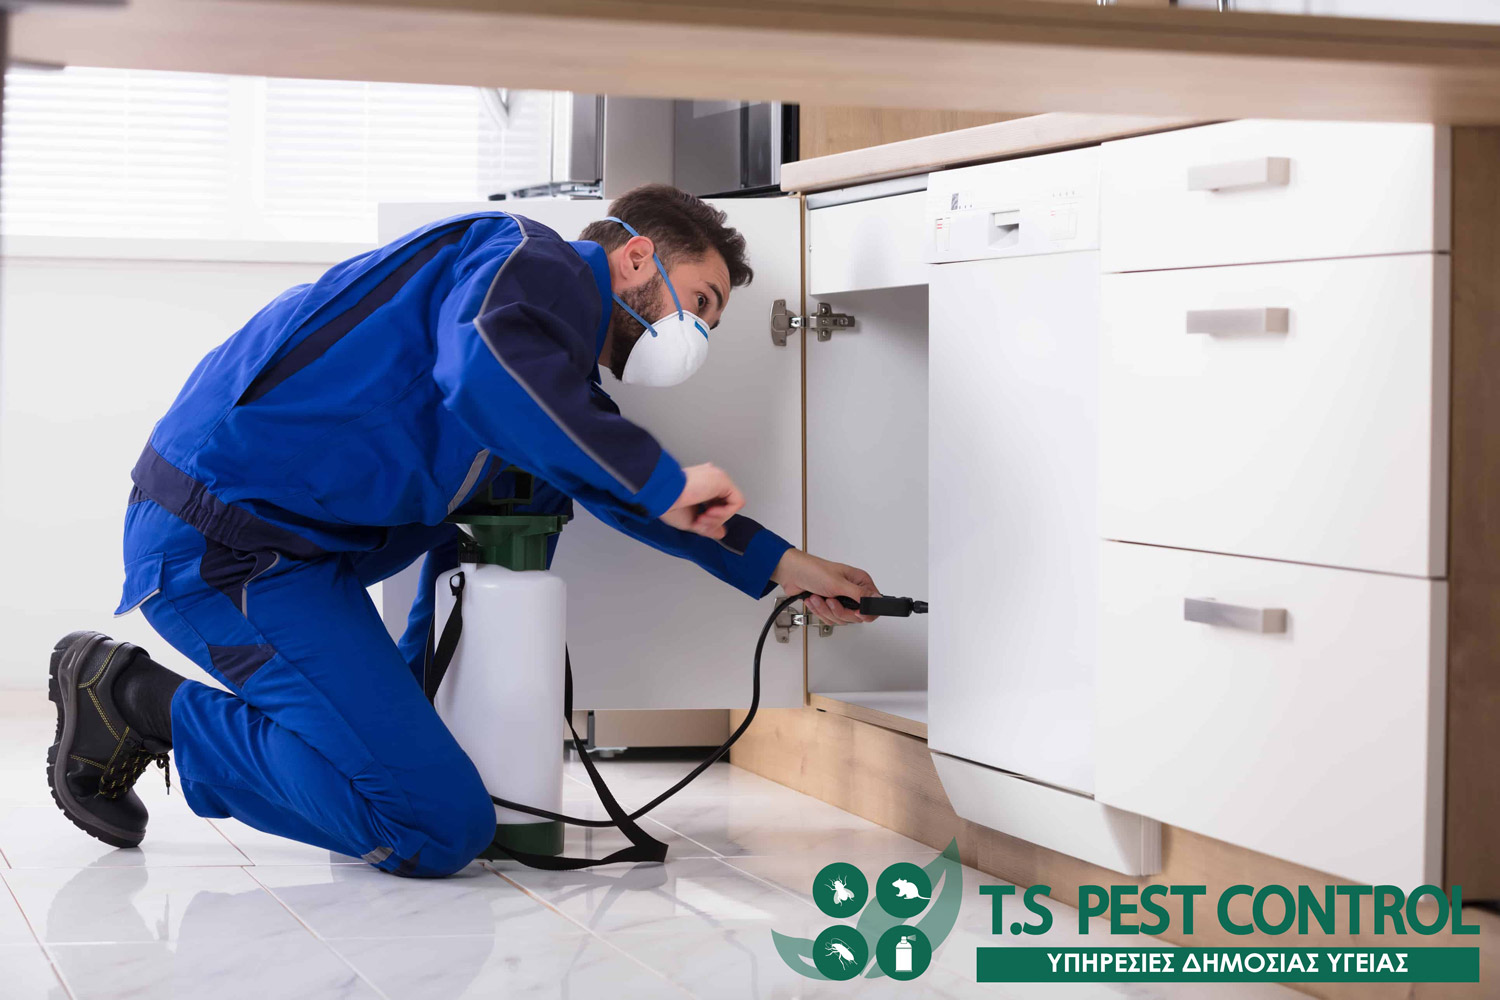 T.S Pest Control - Skroutz.com.cy - Whatsoncyprus